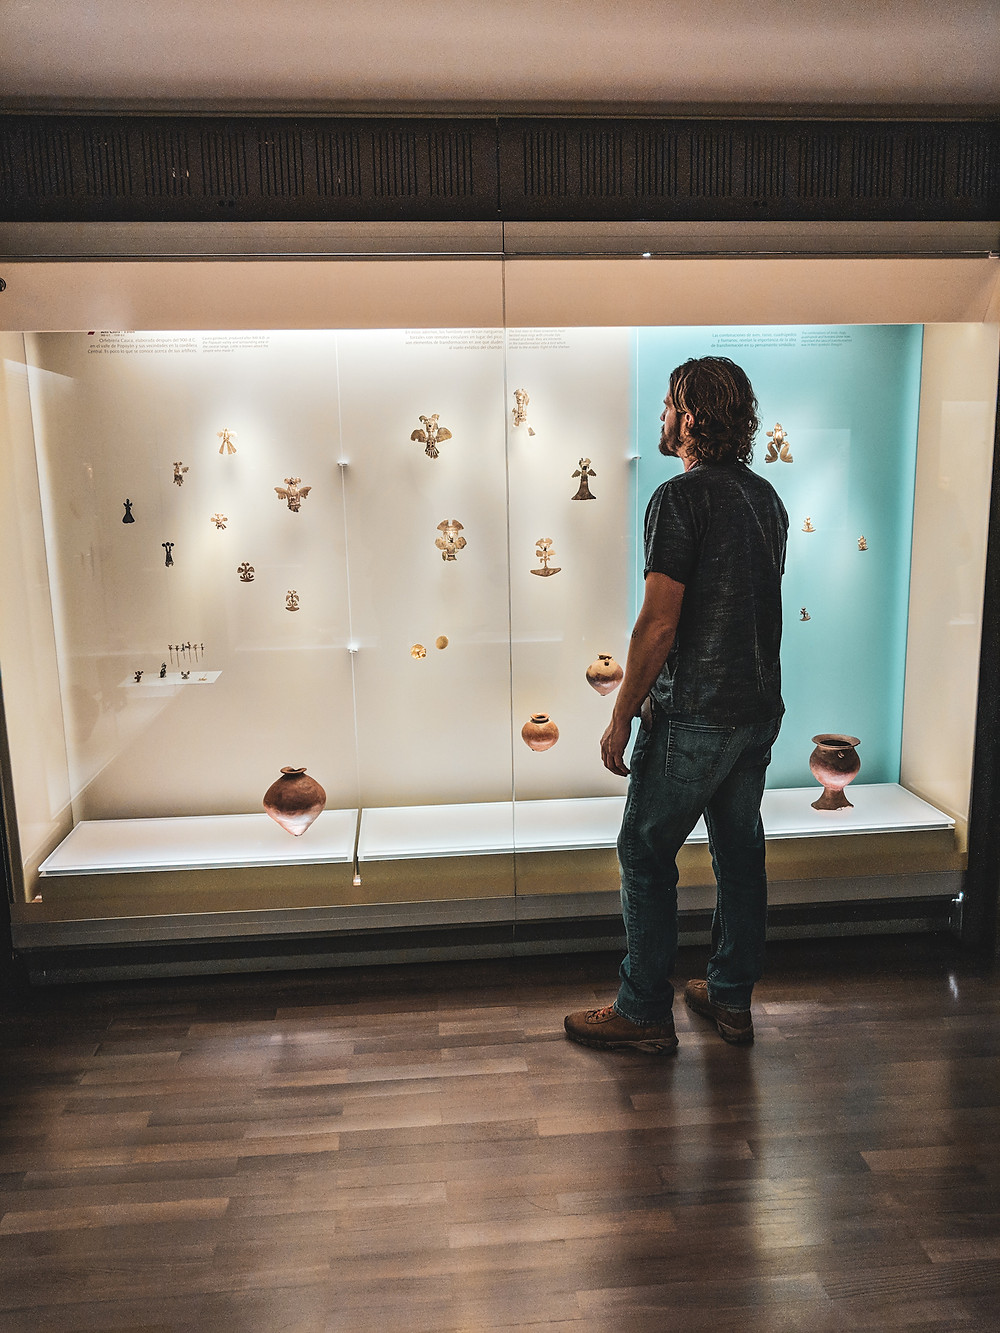 Scott admiring a display at El Museo de Oro, The Museum of Gold in Bogota, Colombia